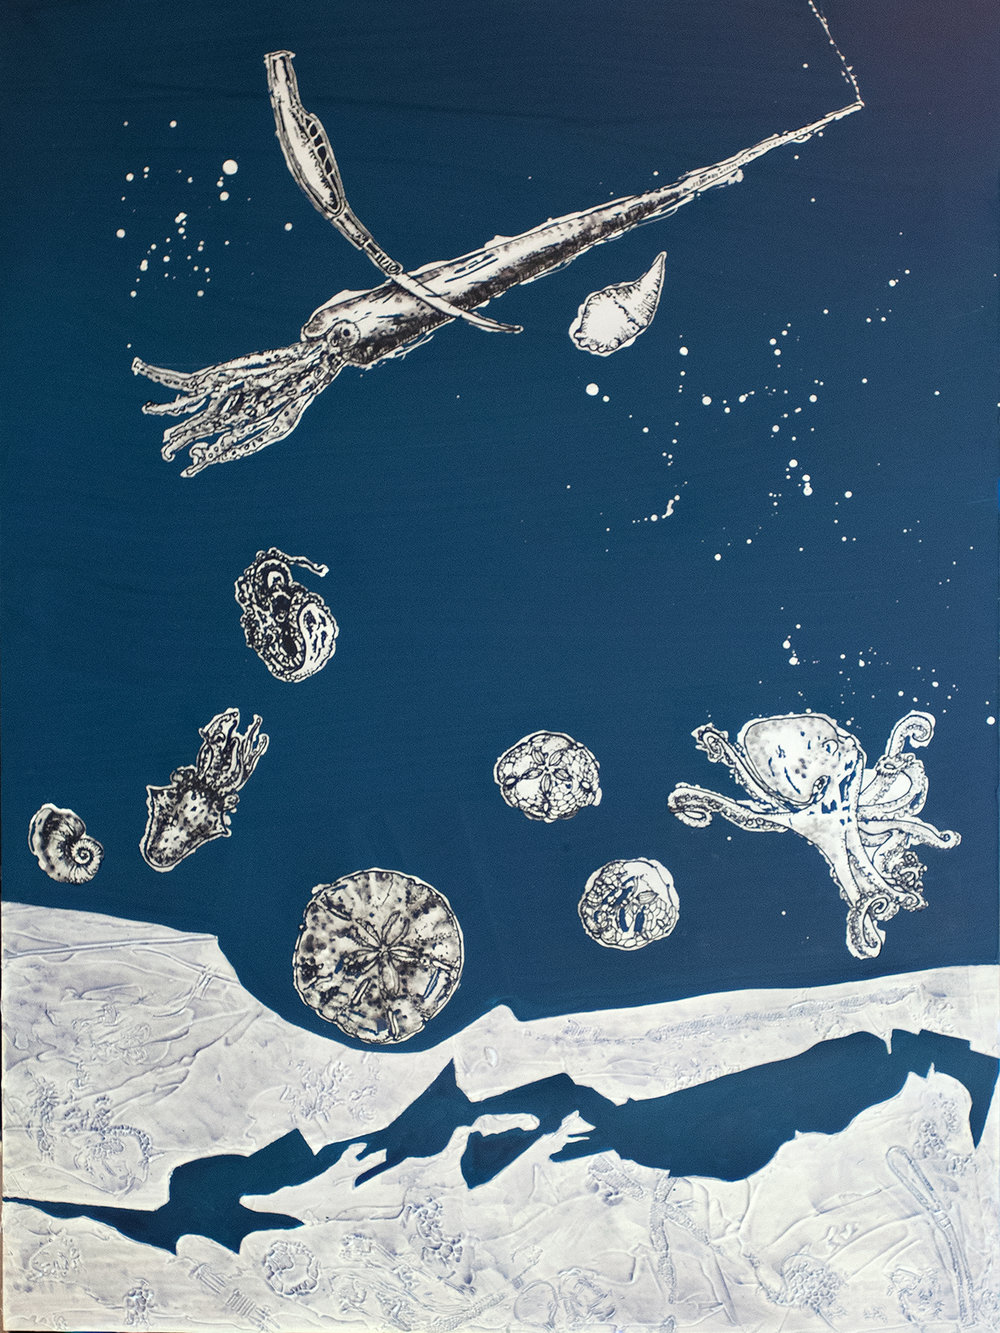 Sand Dollars and Ice Age Pals,  acrylic on panel, 24x18, $!,200